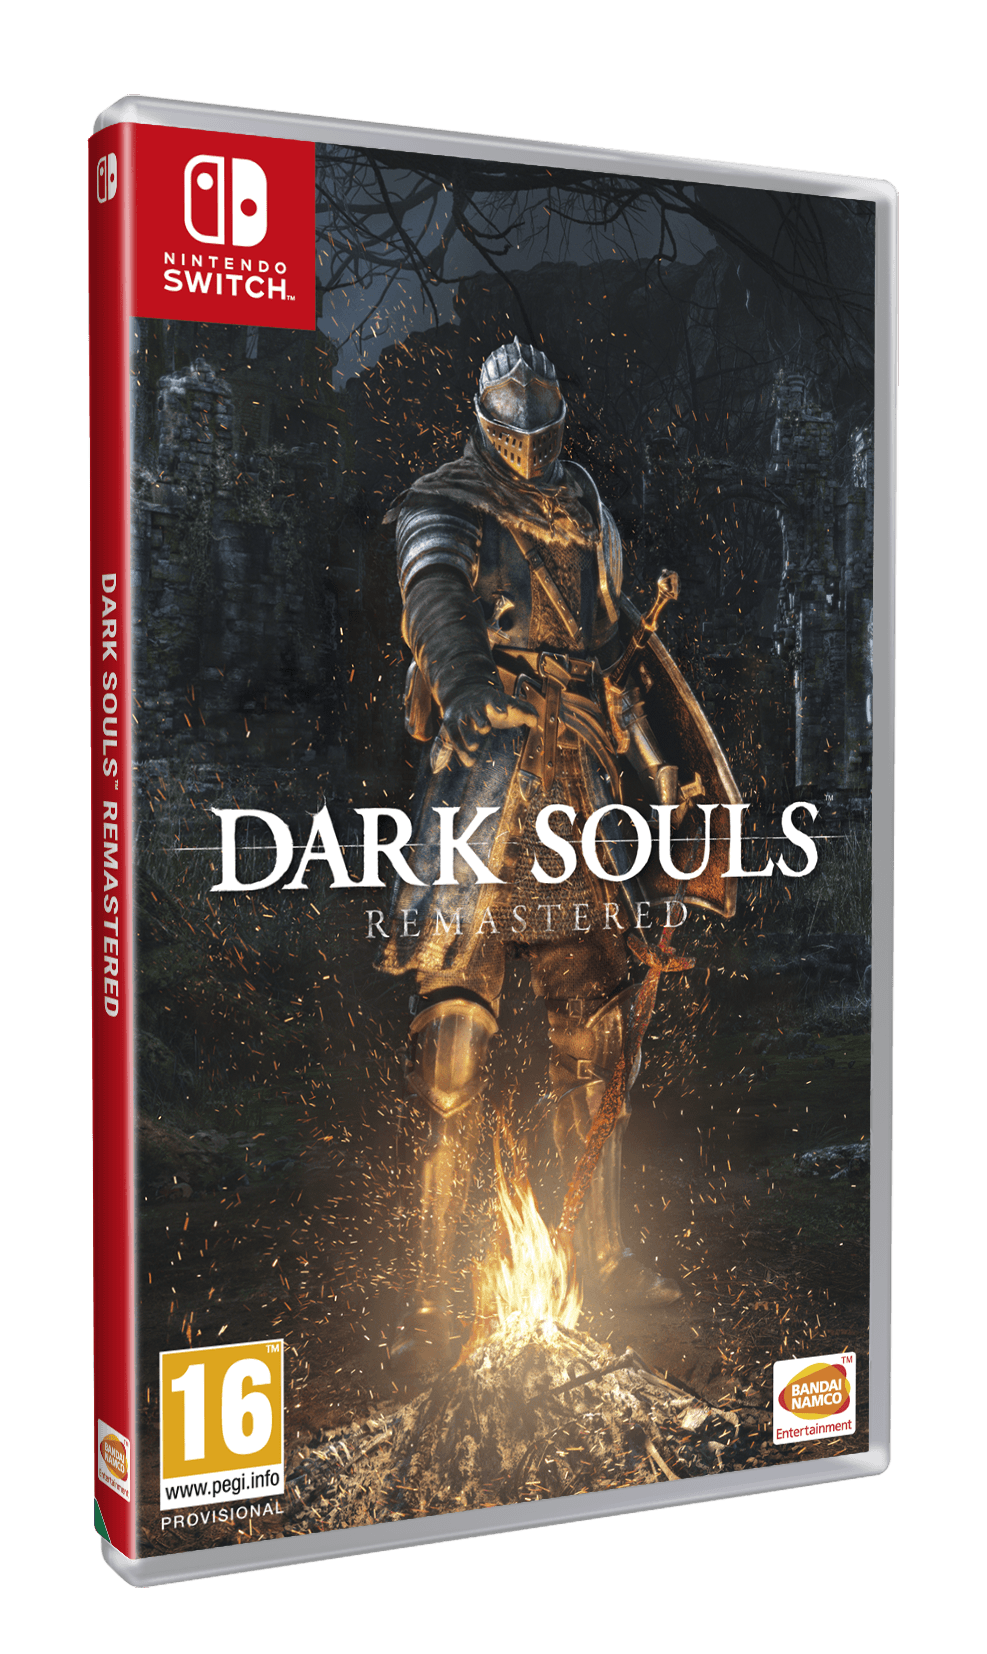 dark souls guide book pdf